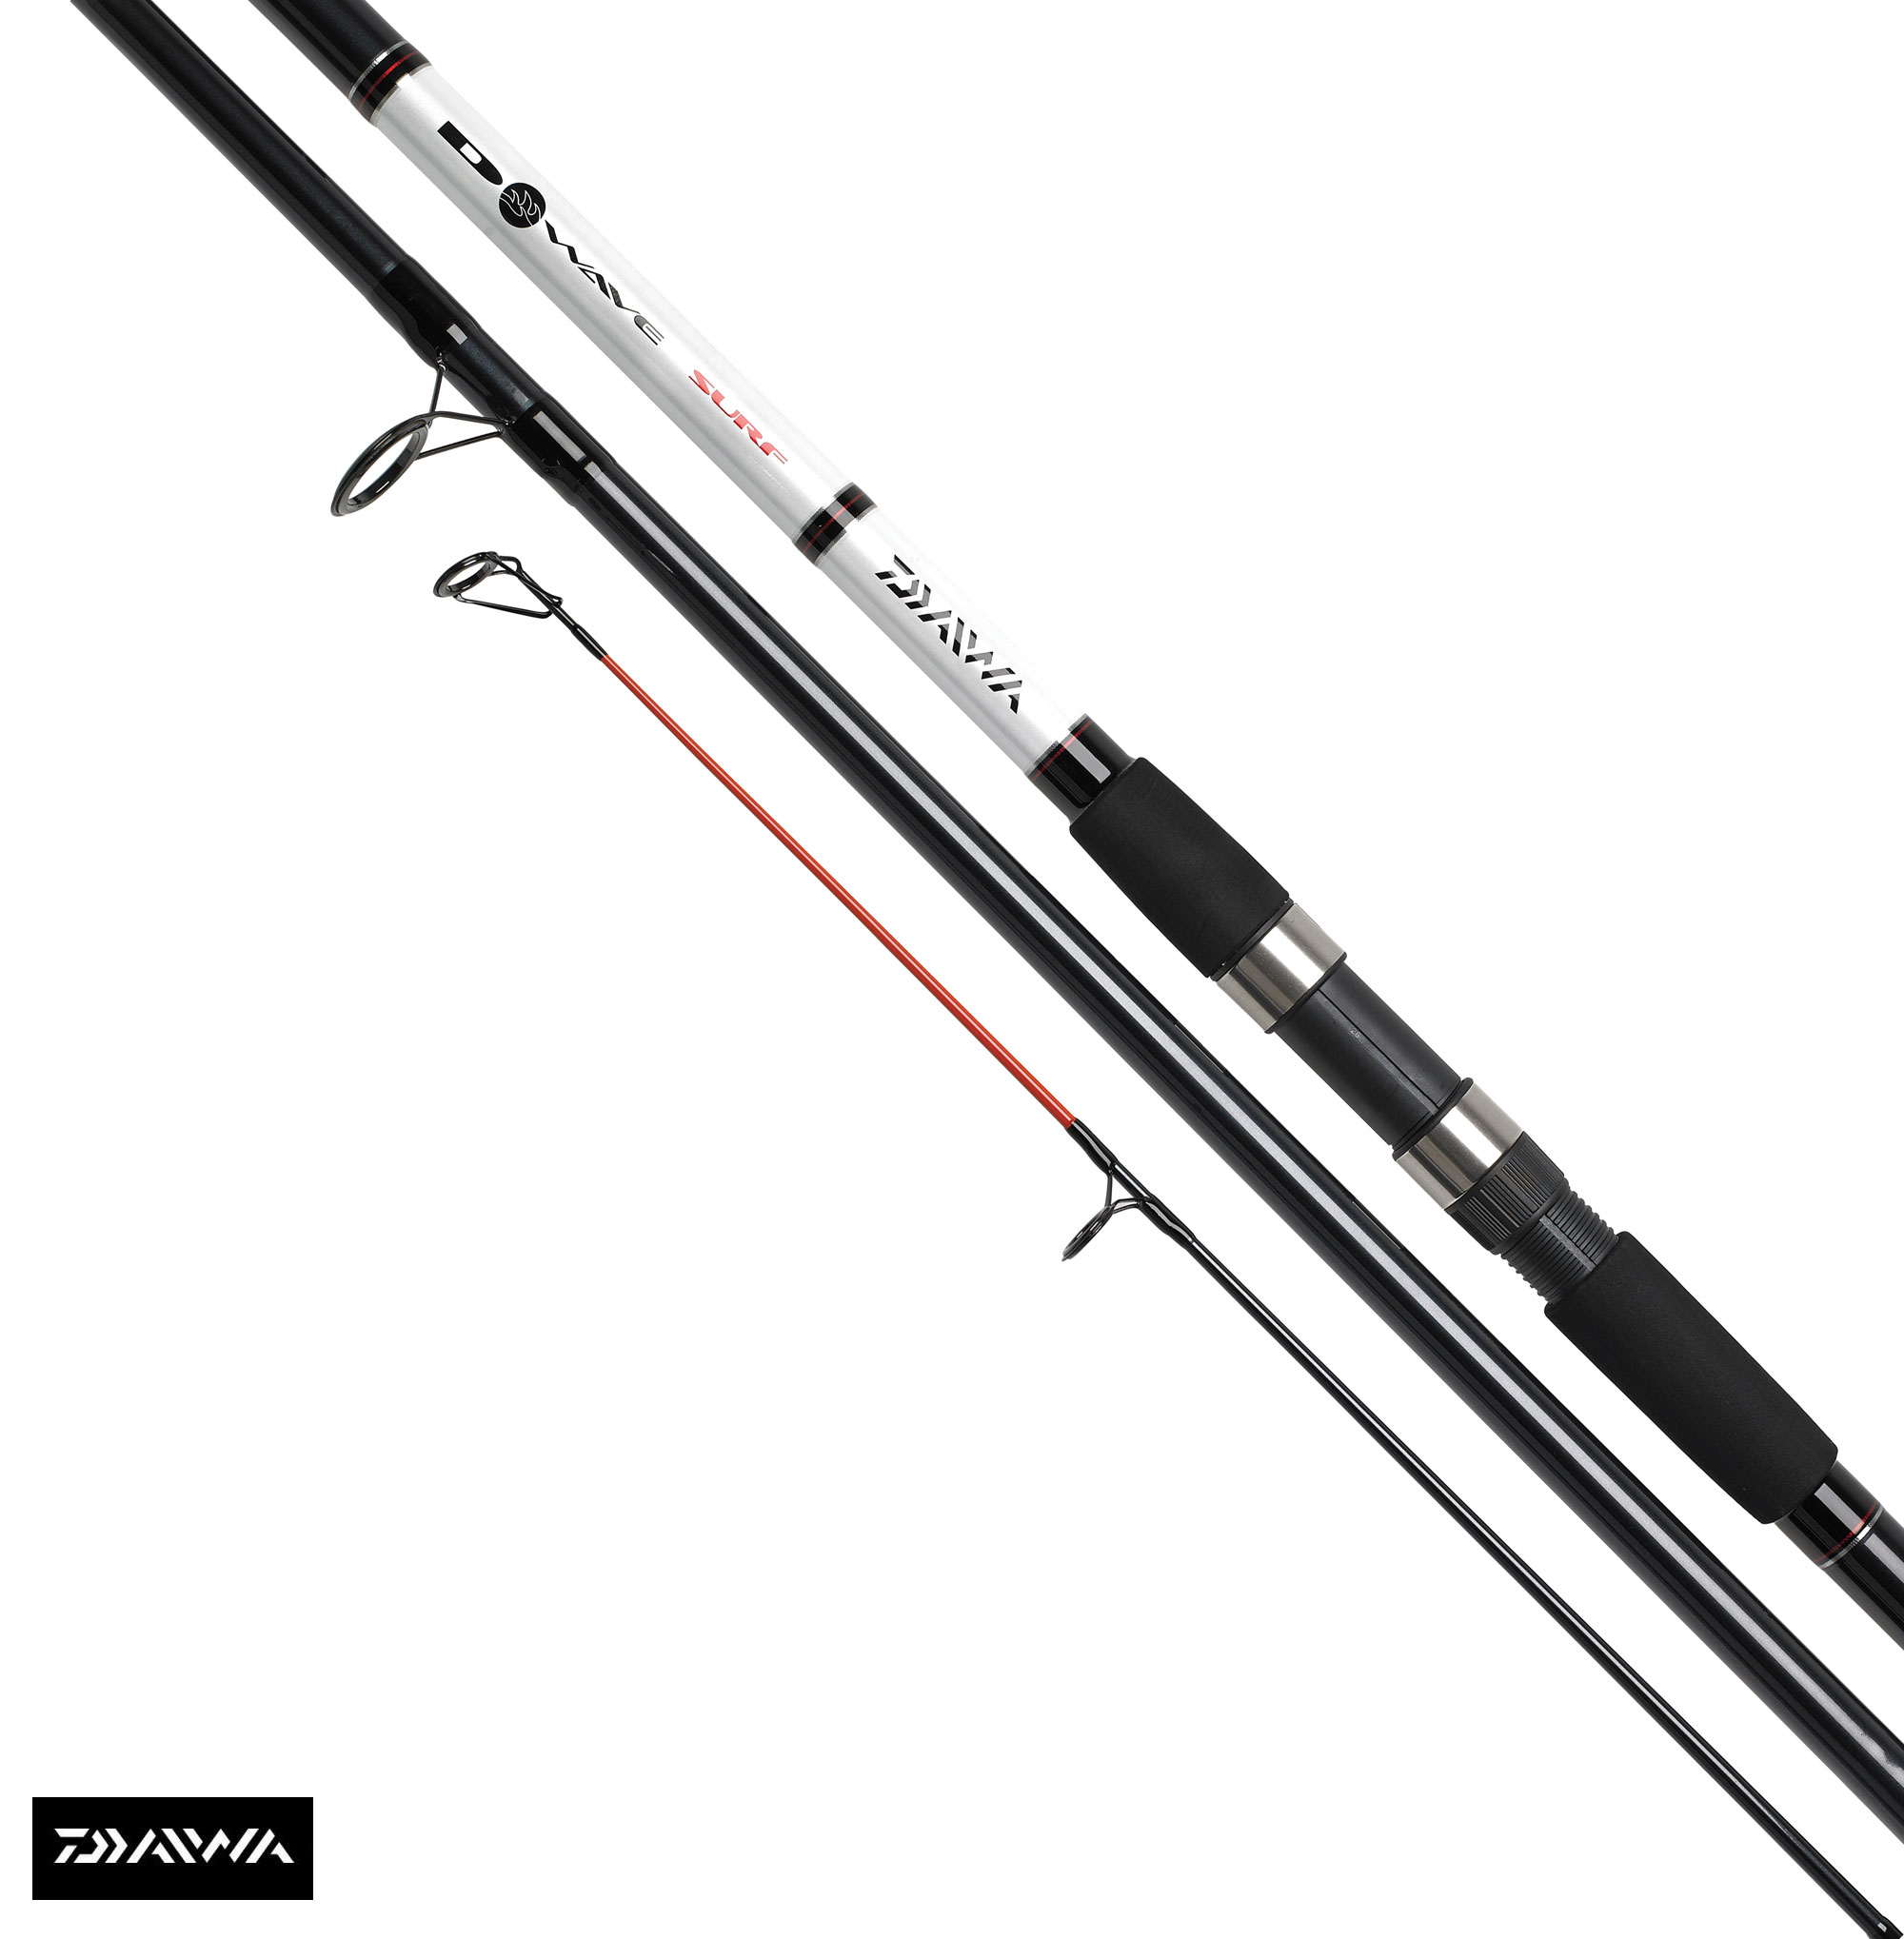 New daiwa d wave surf 12ft 3 piece 4 8oz beach fishing rod for 3 piece fishing rod